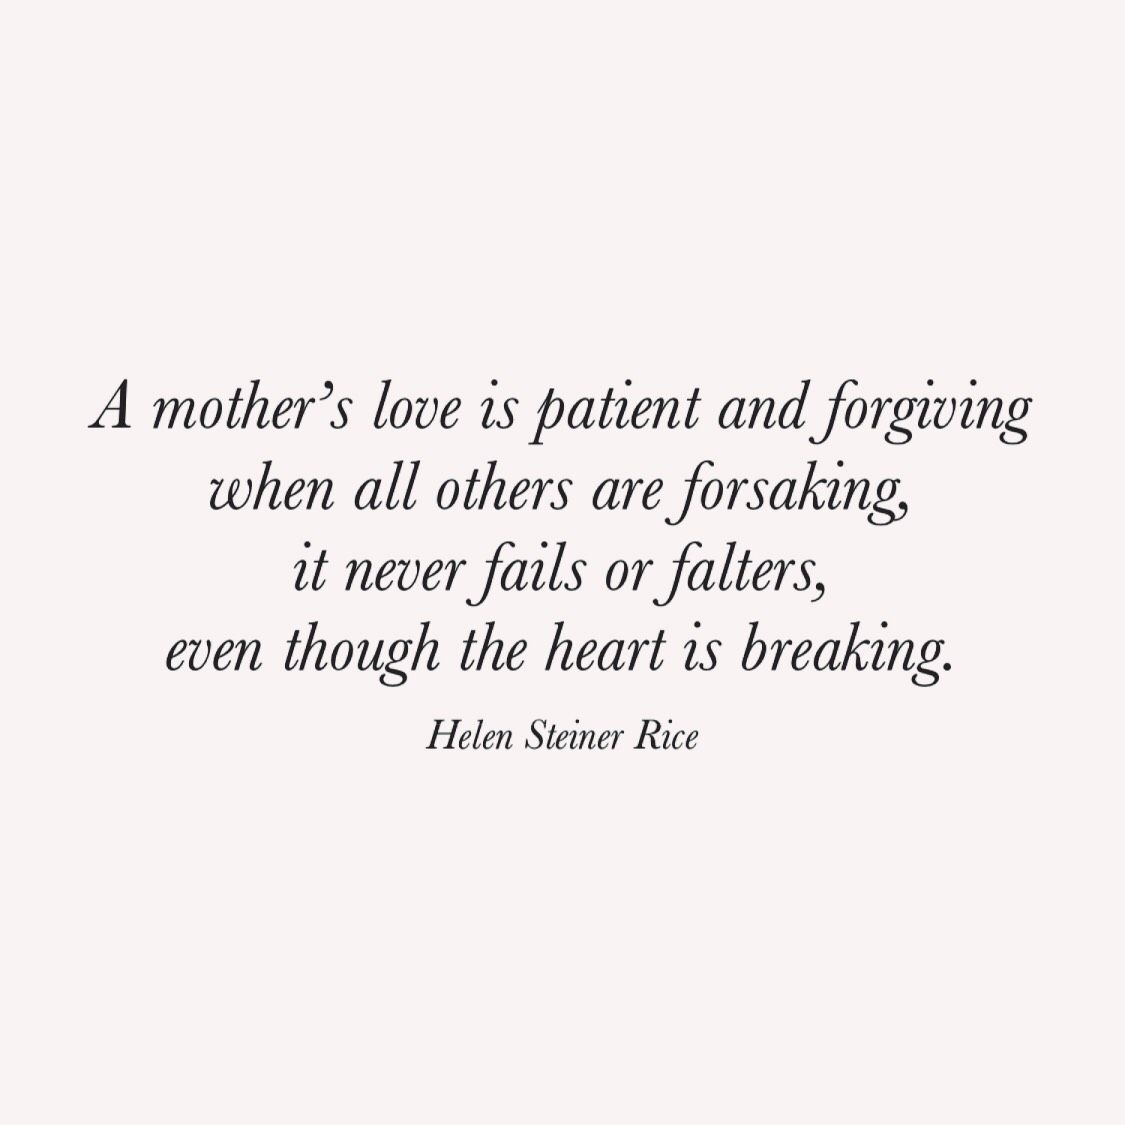 10 Beautiful Mother And Son Bonding Quotes And Images Bond Quotes Mother Quotes Powerful Words